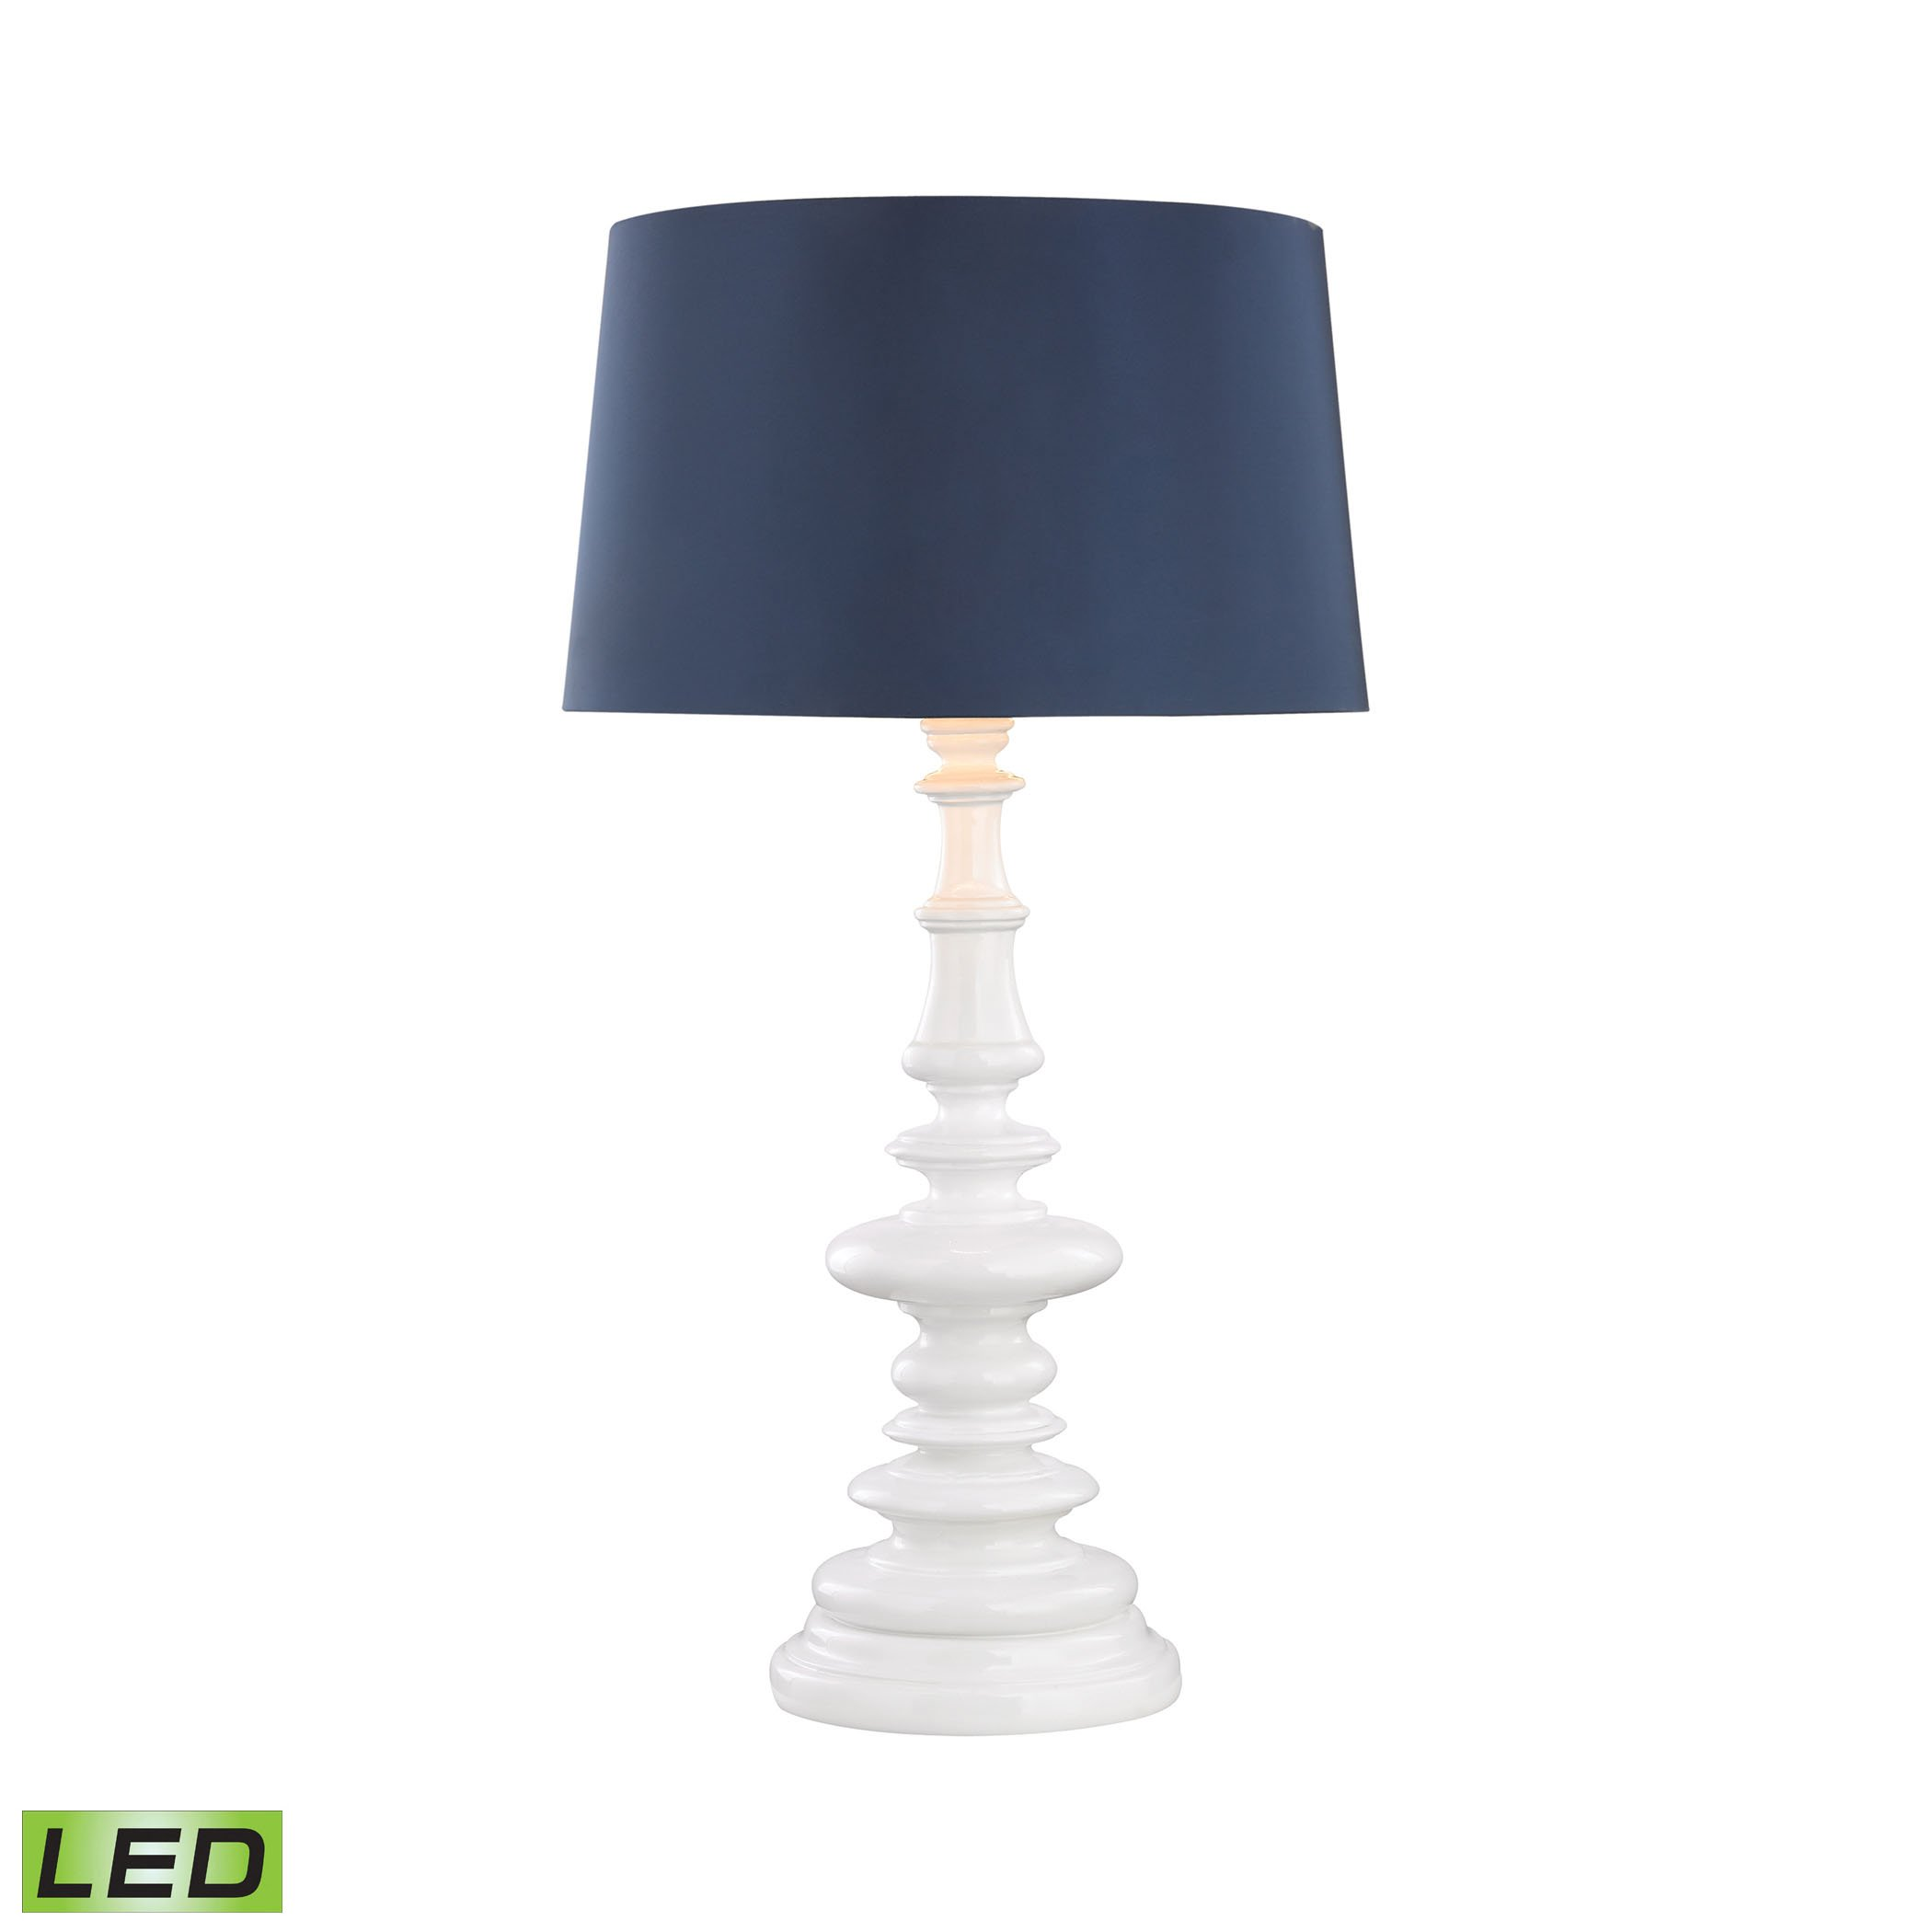 Corsage Outdoor LED Table Lamp With Navy Blue Shade by AR Lighting